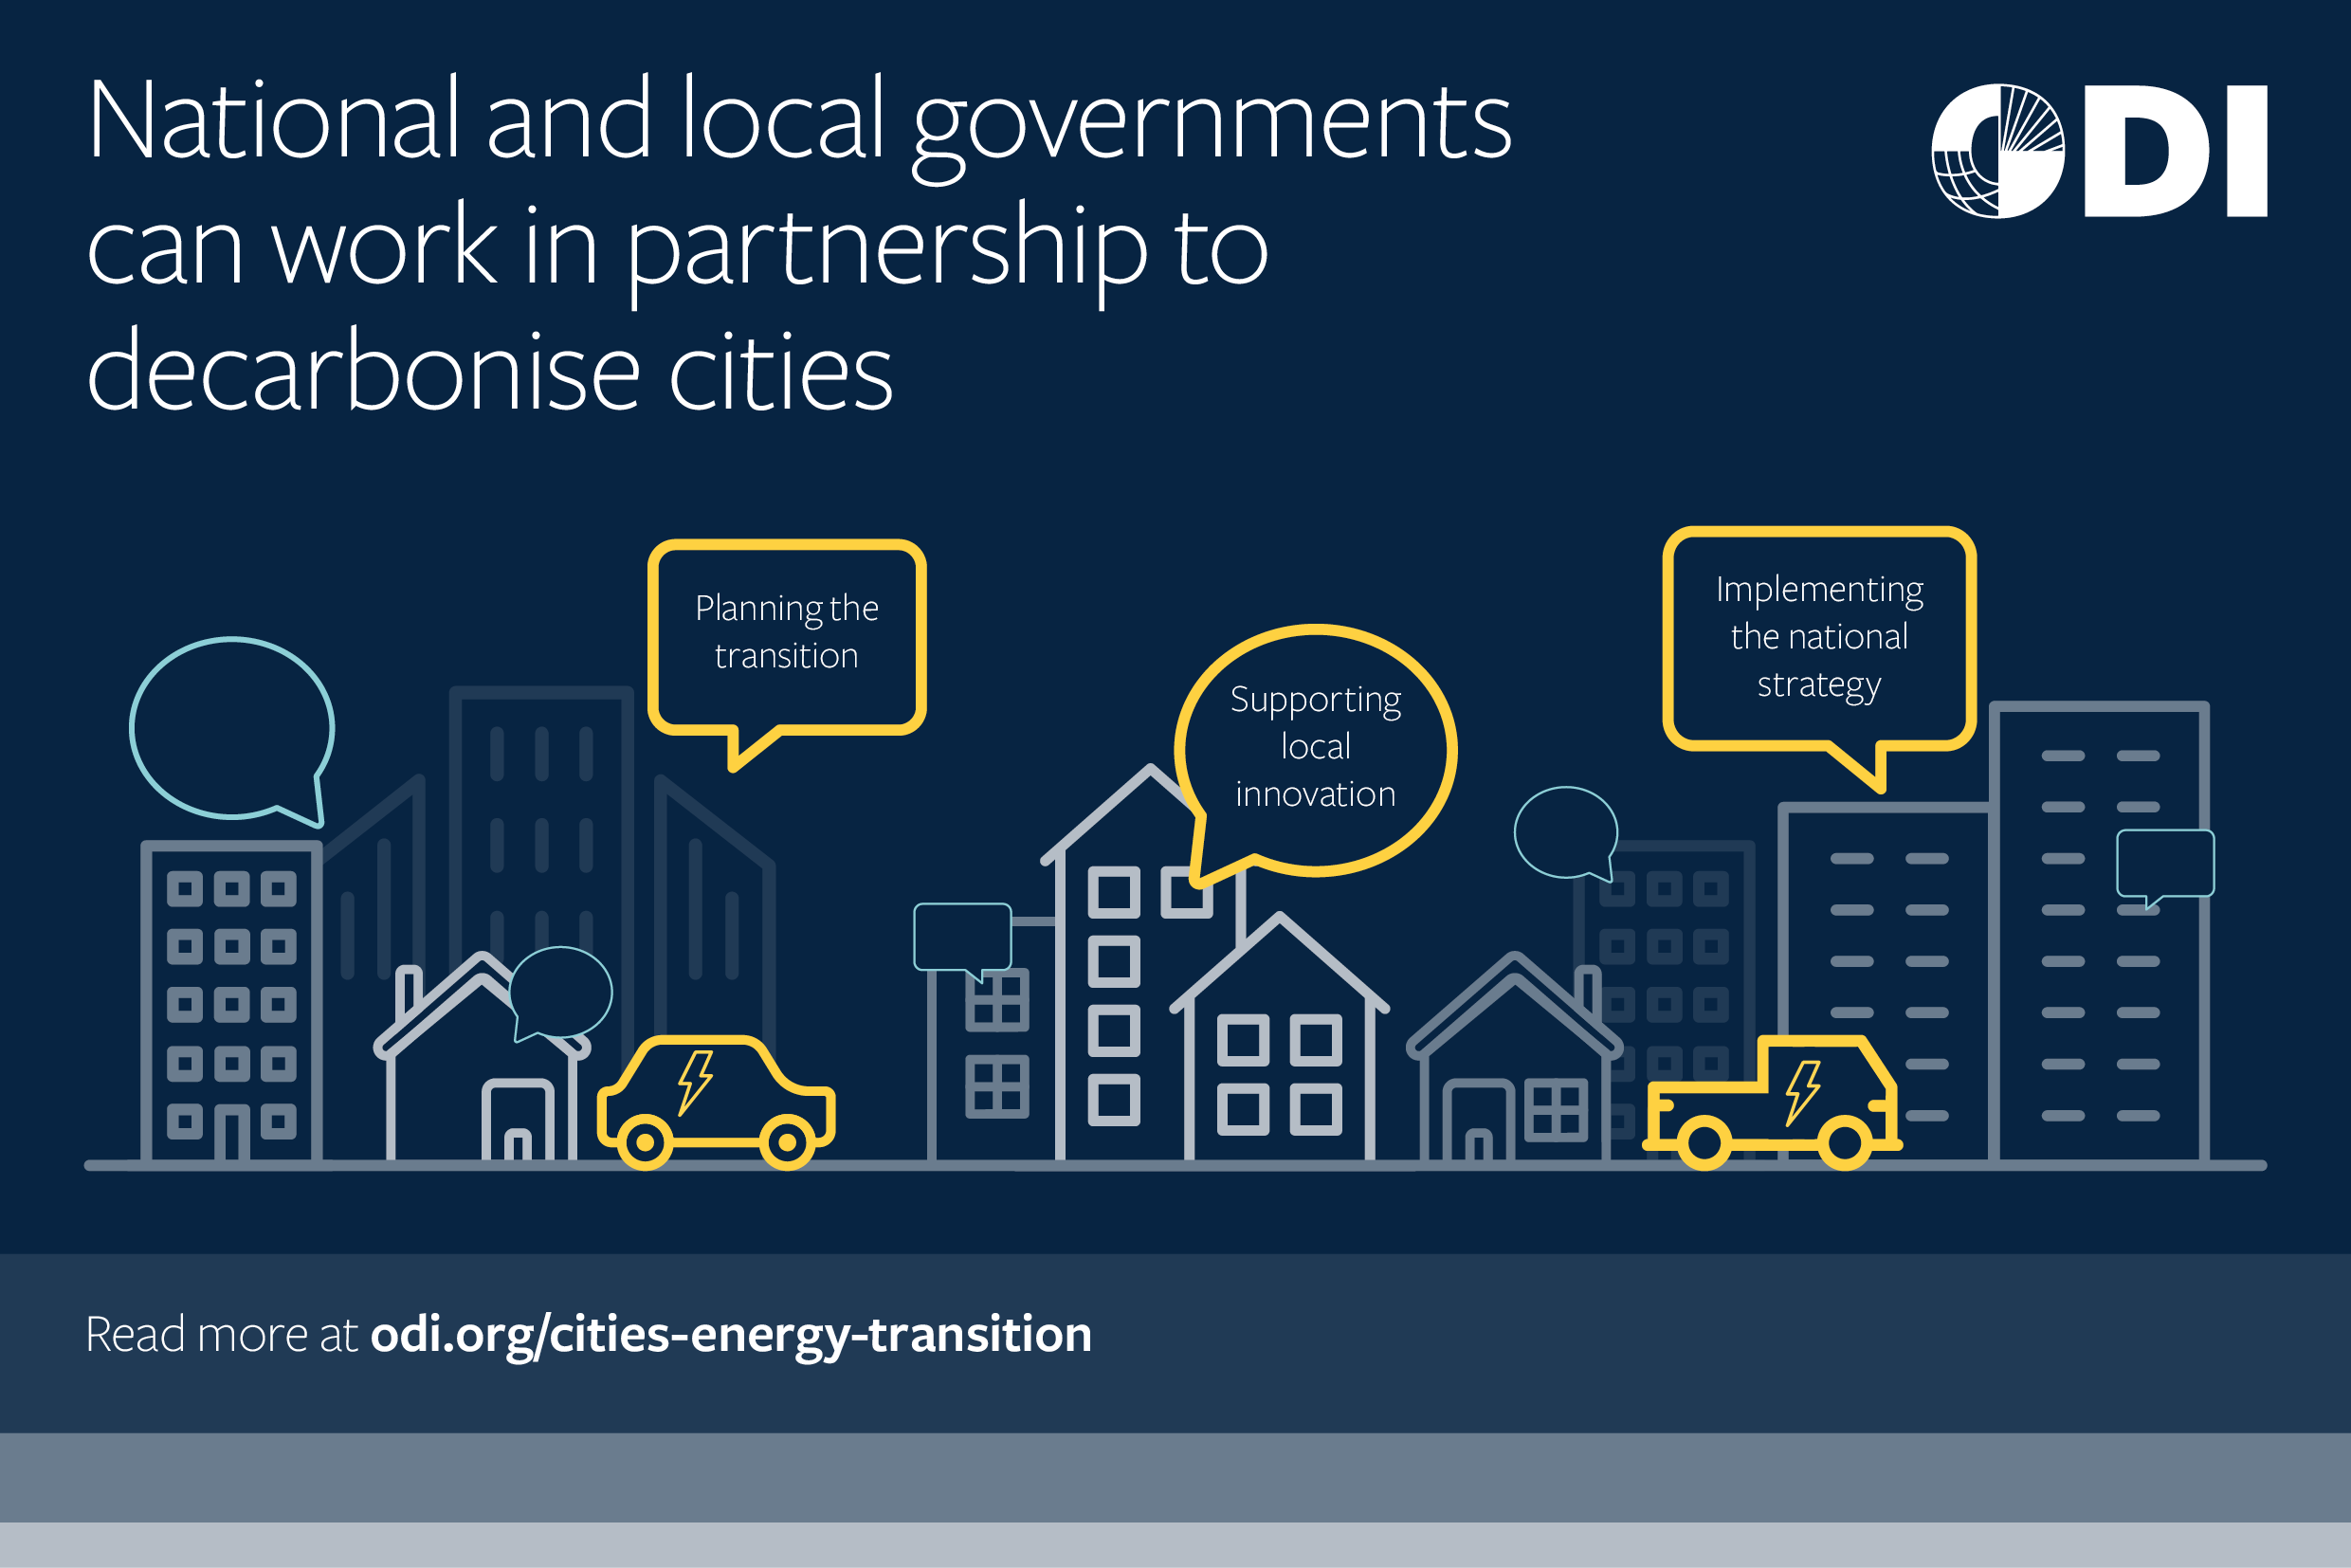 National and local governments can work in partnership to decarbonise cities.